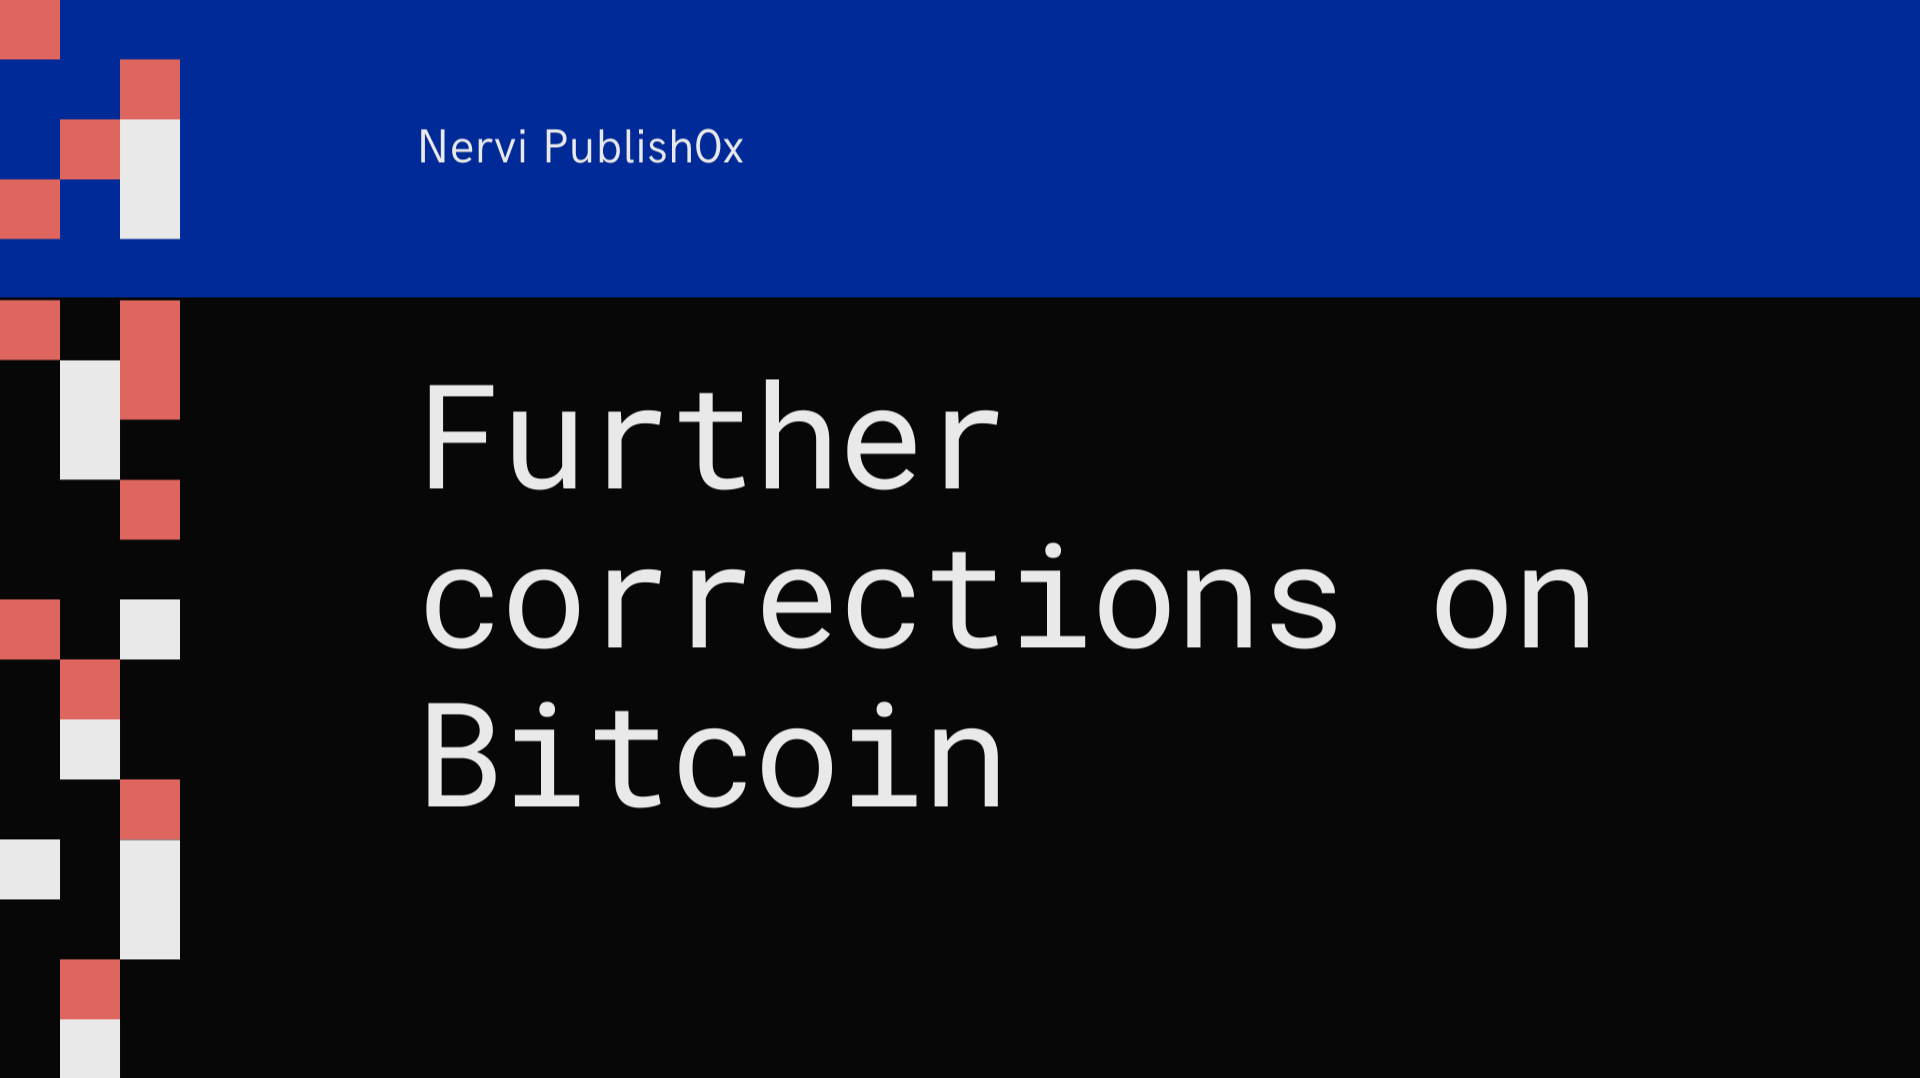 Further corrections on Bitcoin